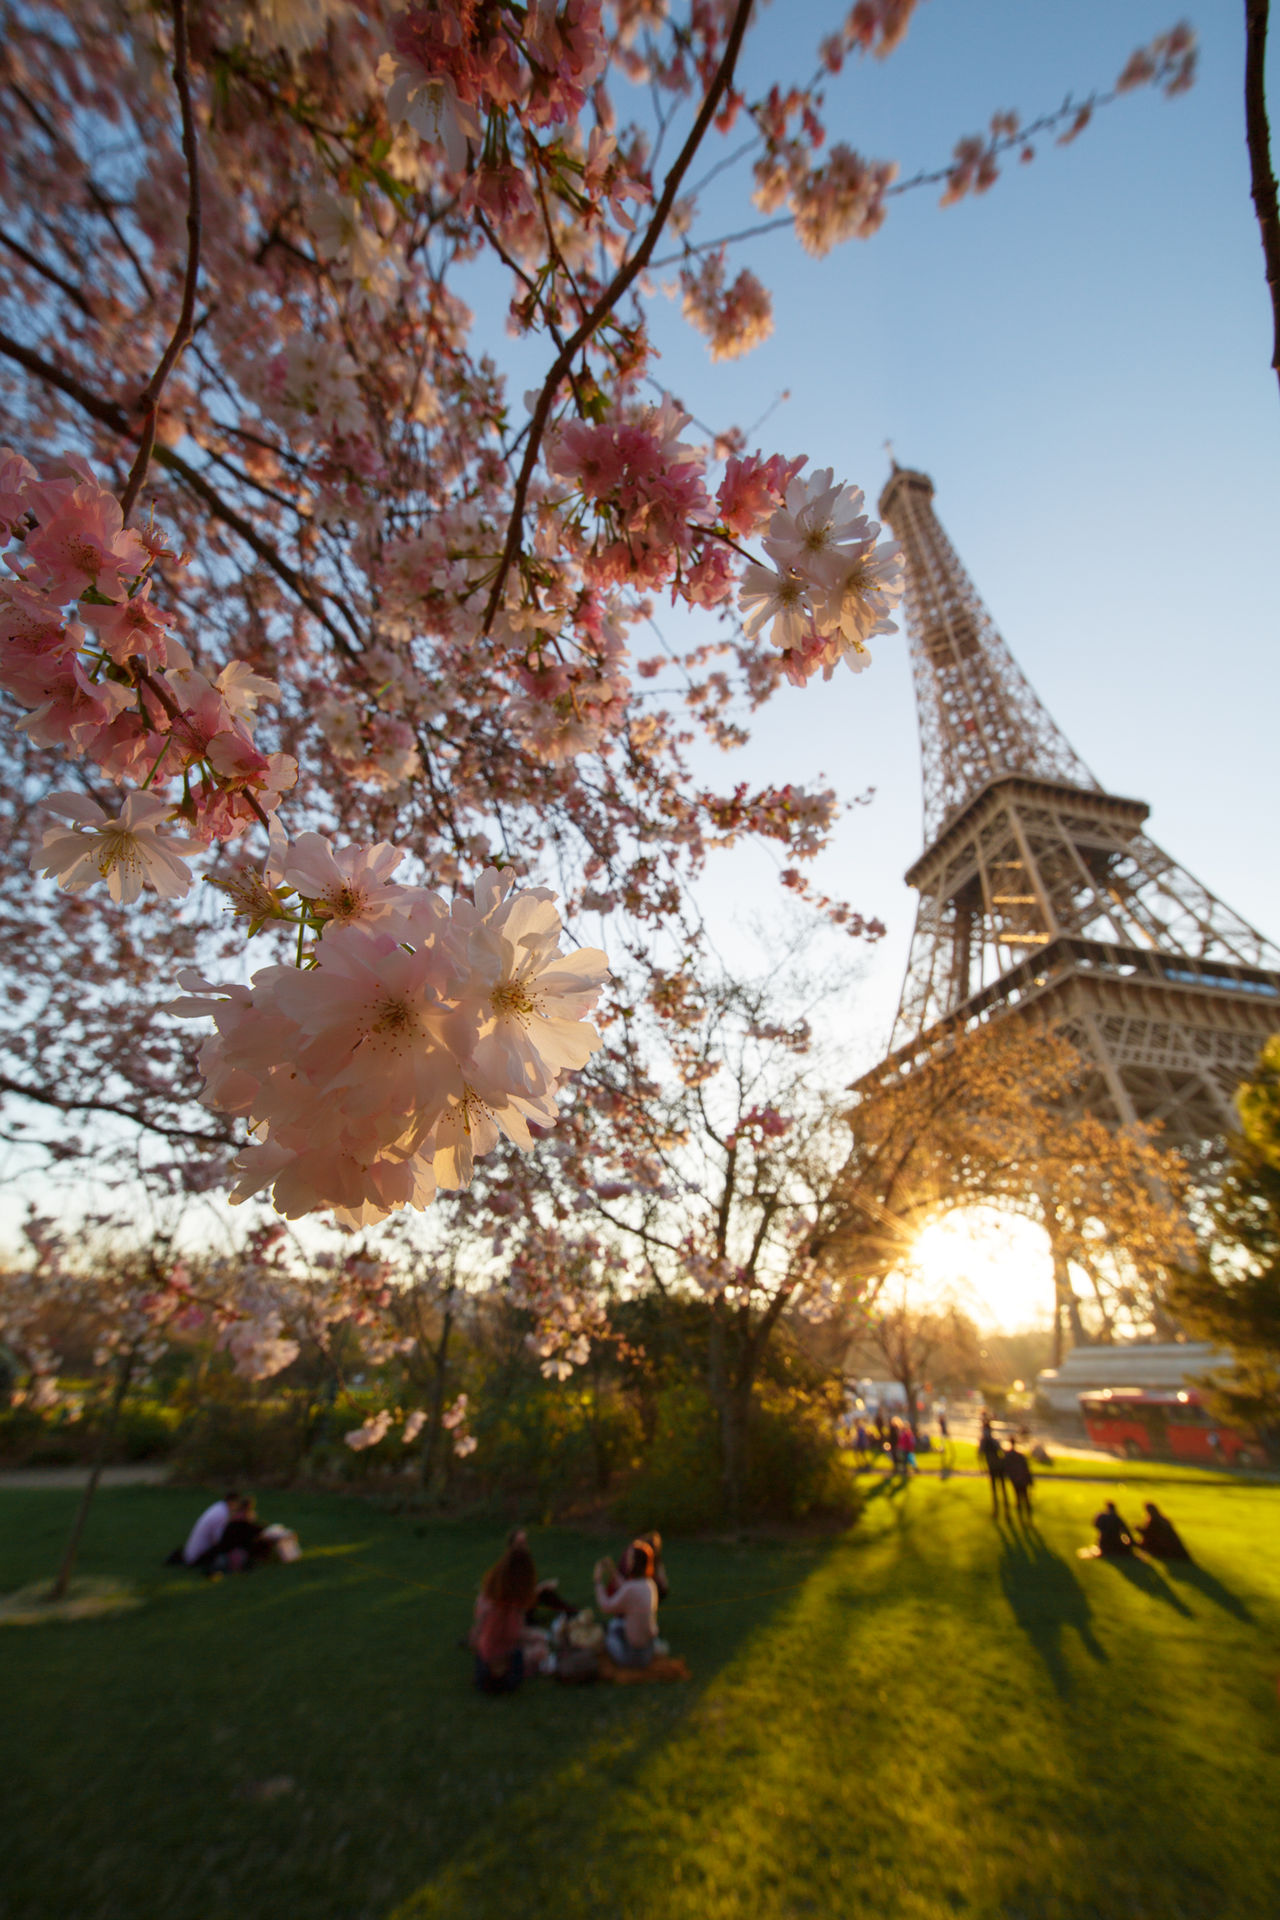 Spring Springtime Spring Flowers Pink Color Beauty In Nature 21march Flowers Blossom 🌼flowers🌼 Cerisier En Fleurs Printemps Tour Eiffel Flower Head C'est Le Printemps Laowa12mm Amour